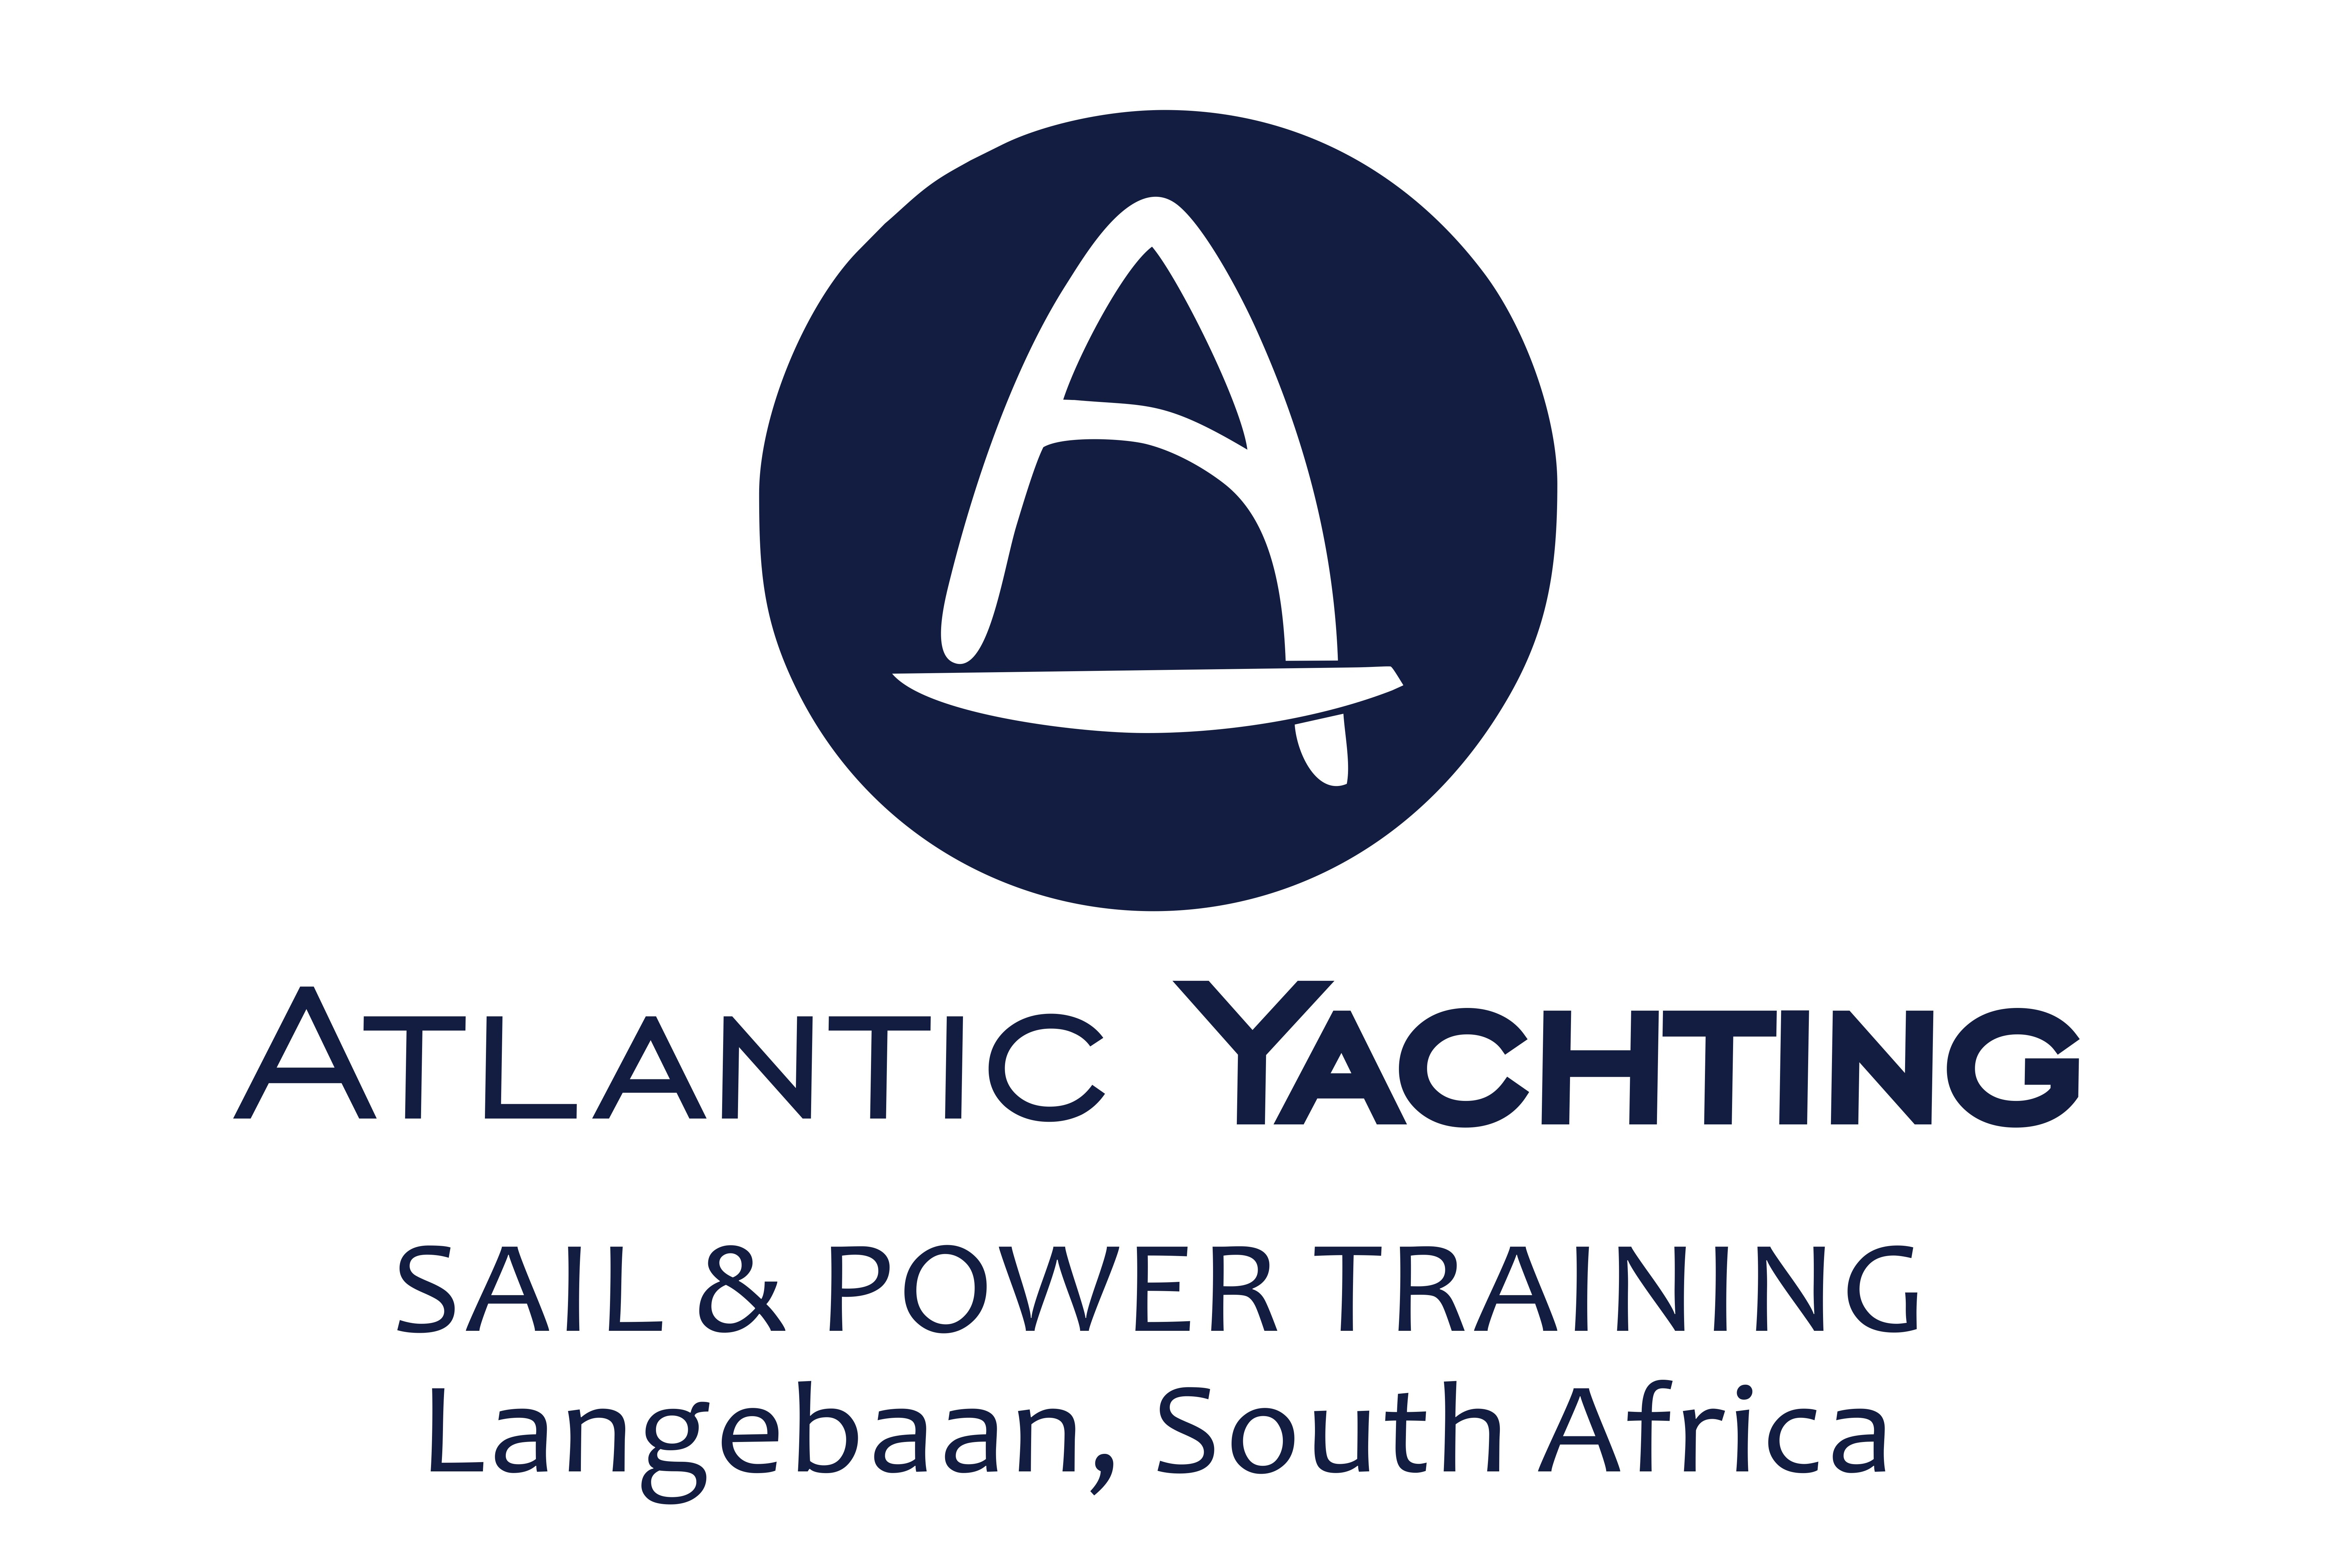 Atlantic Yachting New Logo Navy 4x6